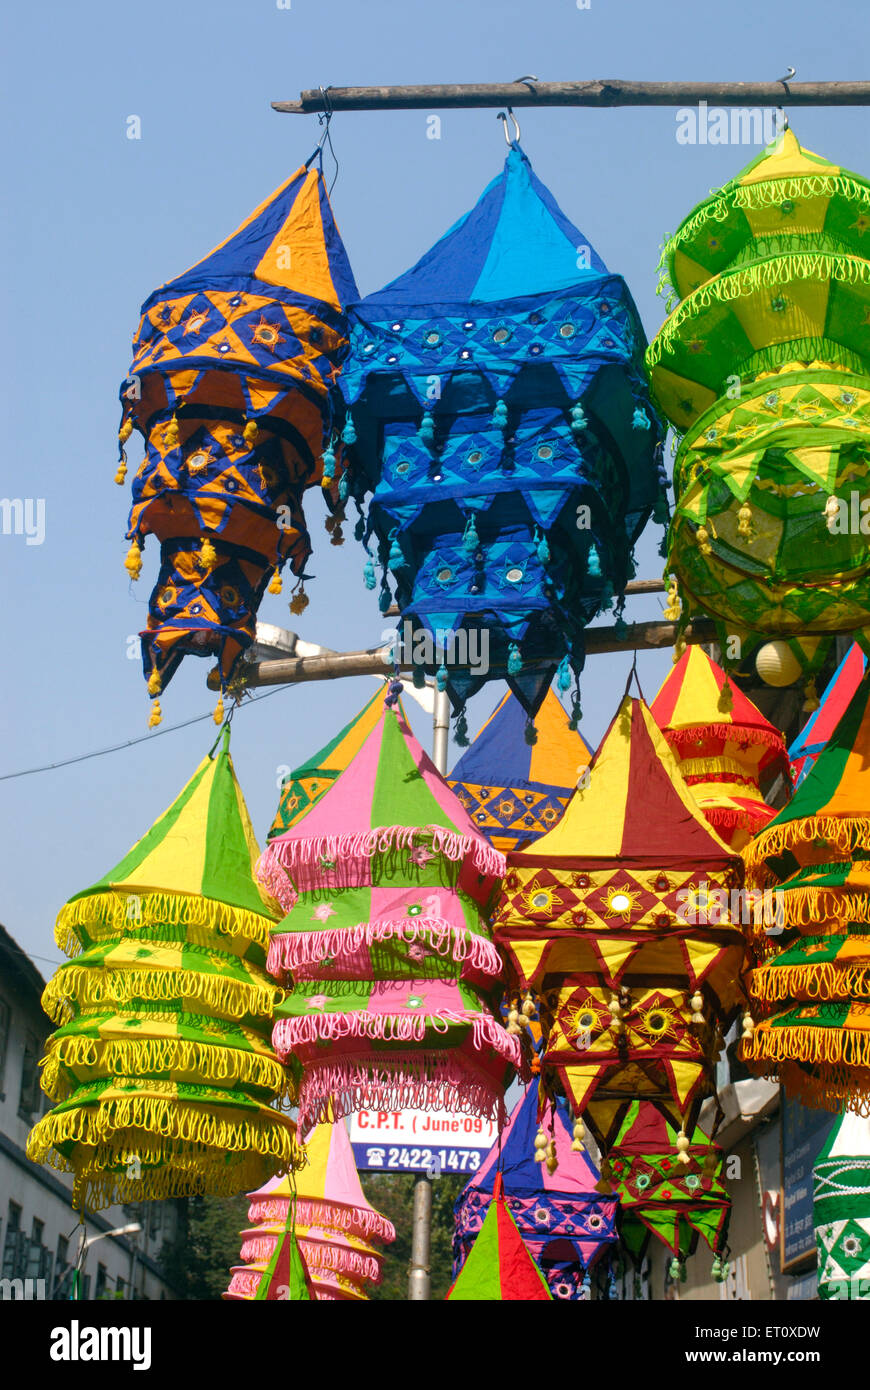 Colourful lanterns cloth lampshades handicraft work akashkandil hang colourful lanterns cloth lampshades handicraft work akashkandil hang shop for sell celebrating diwali festival dadar bombay mozeypictures Image collections